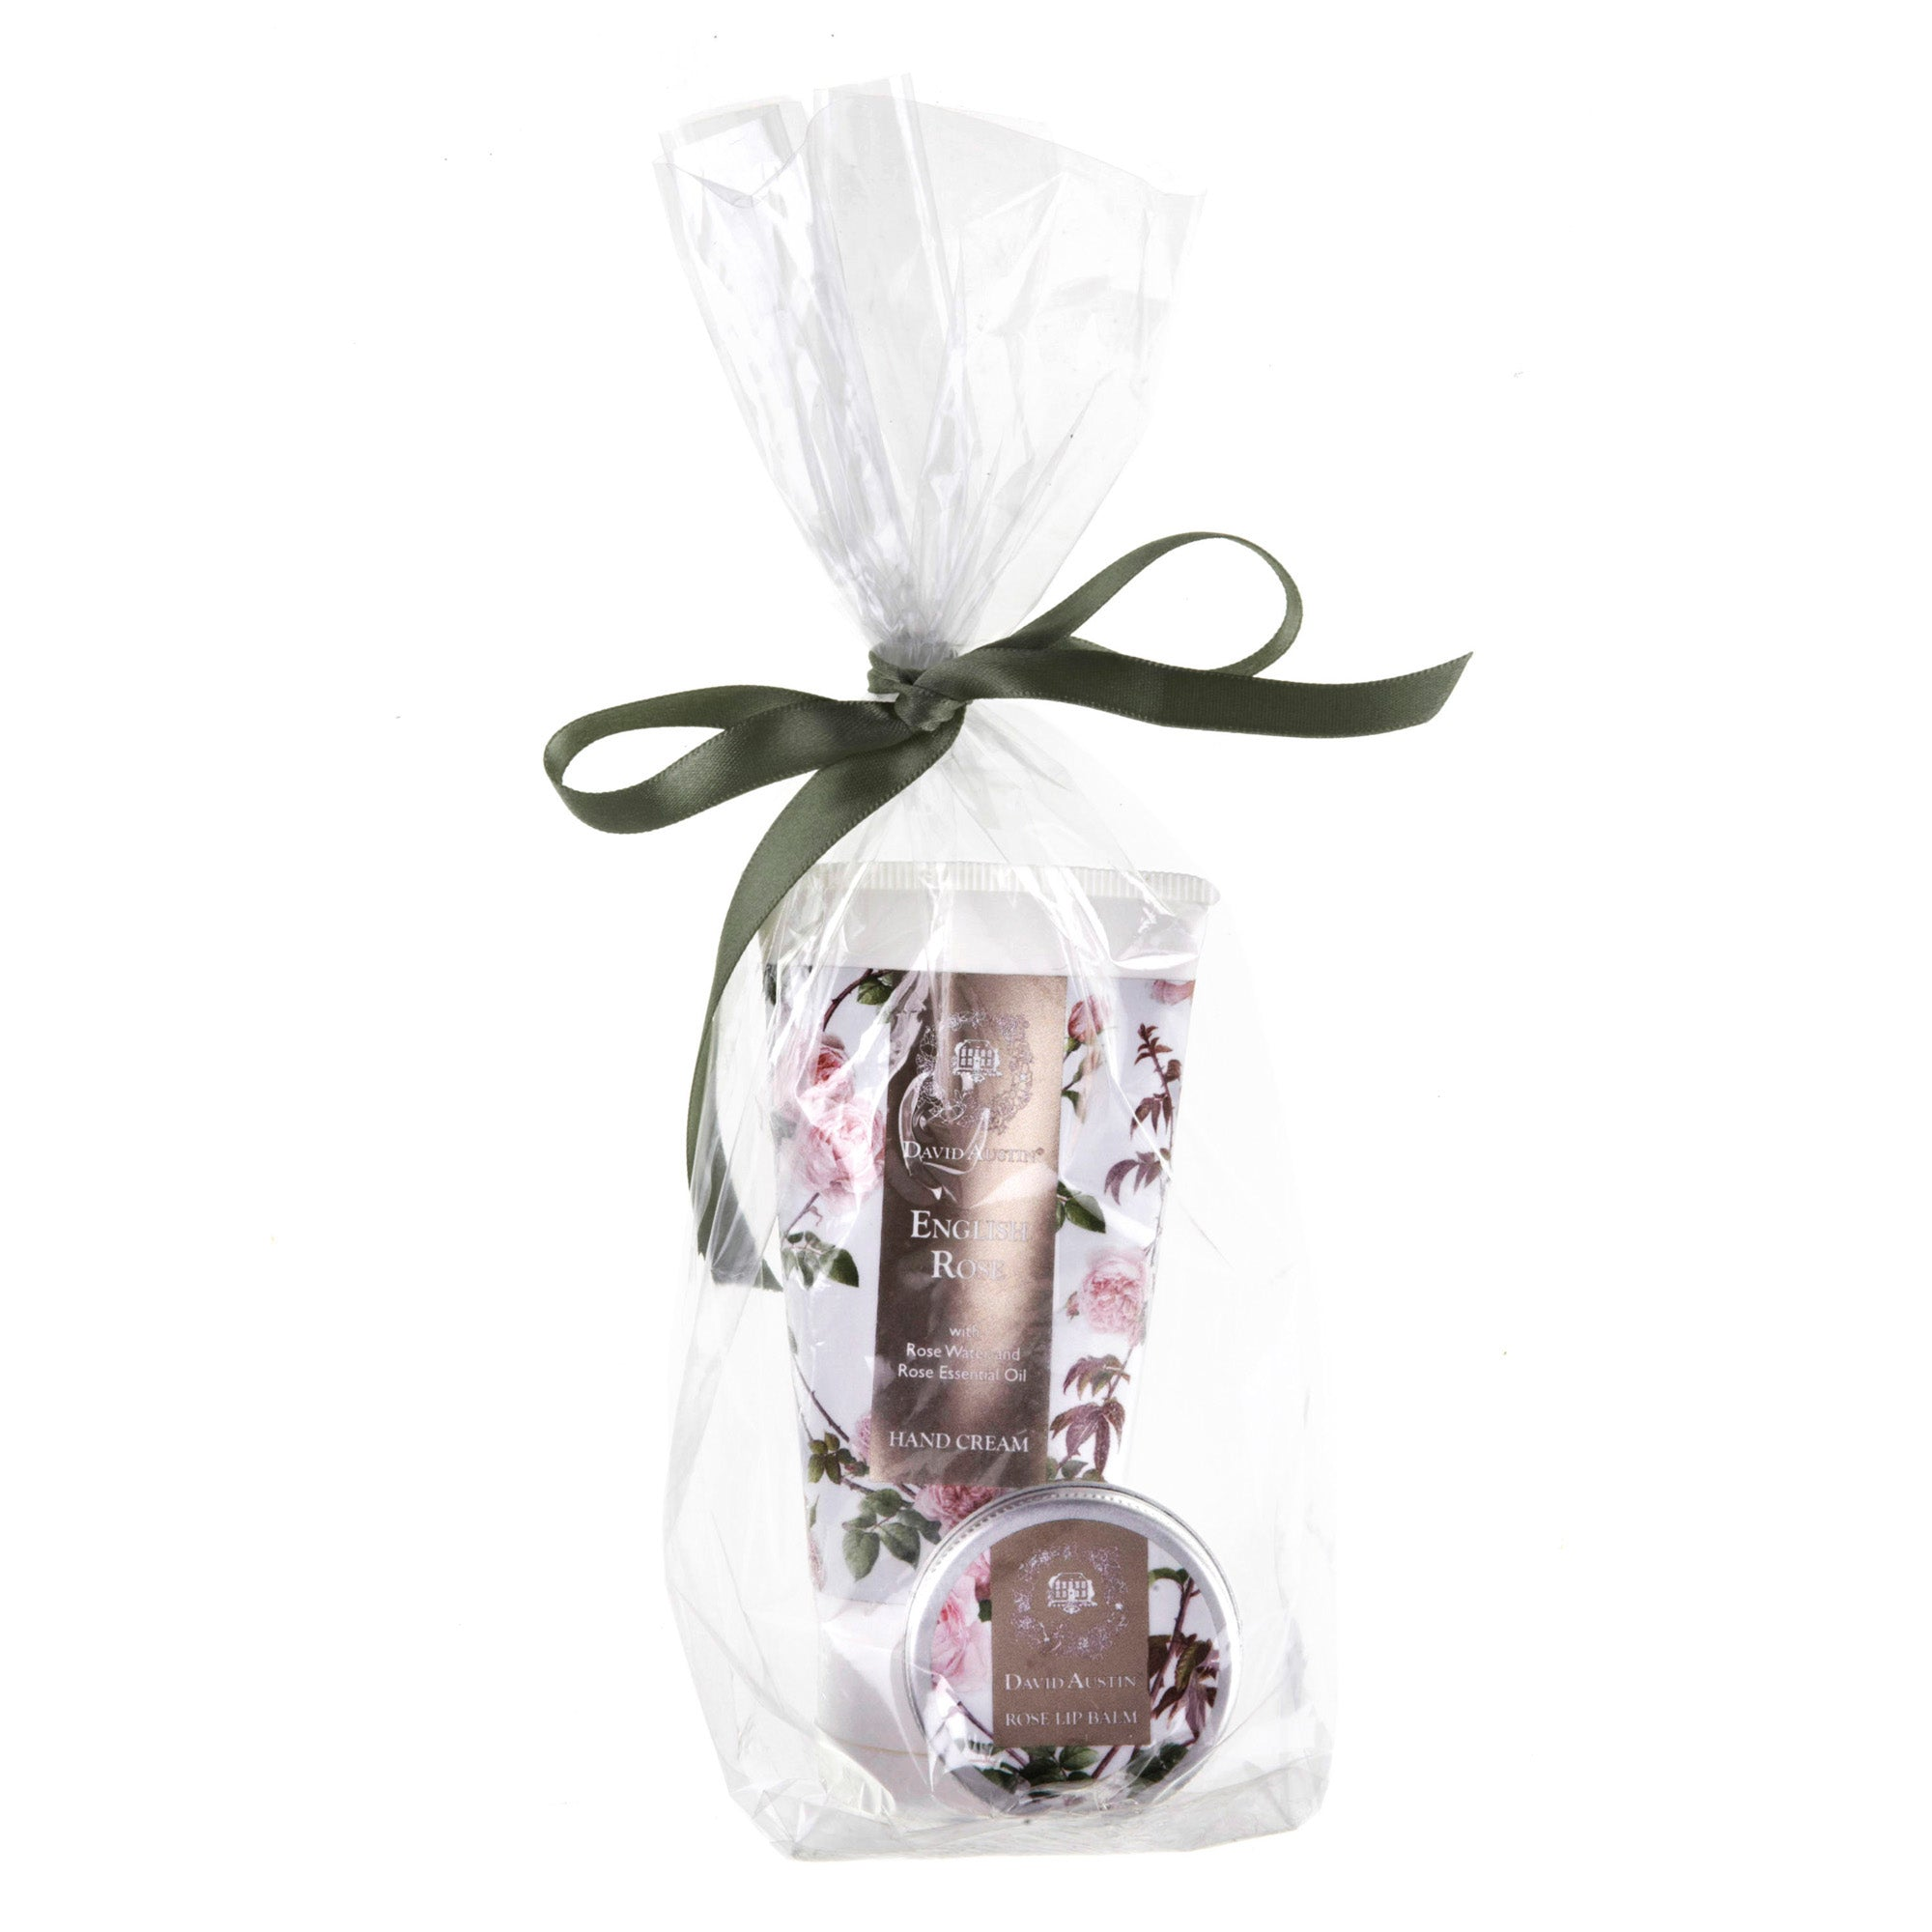 English Rose Hand Cream and Lip Balm Gift Set